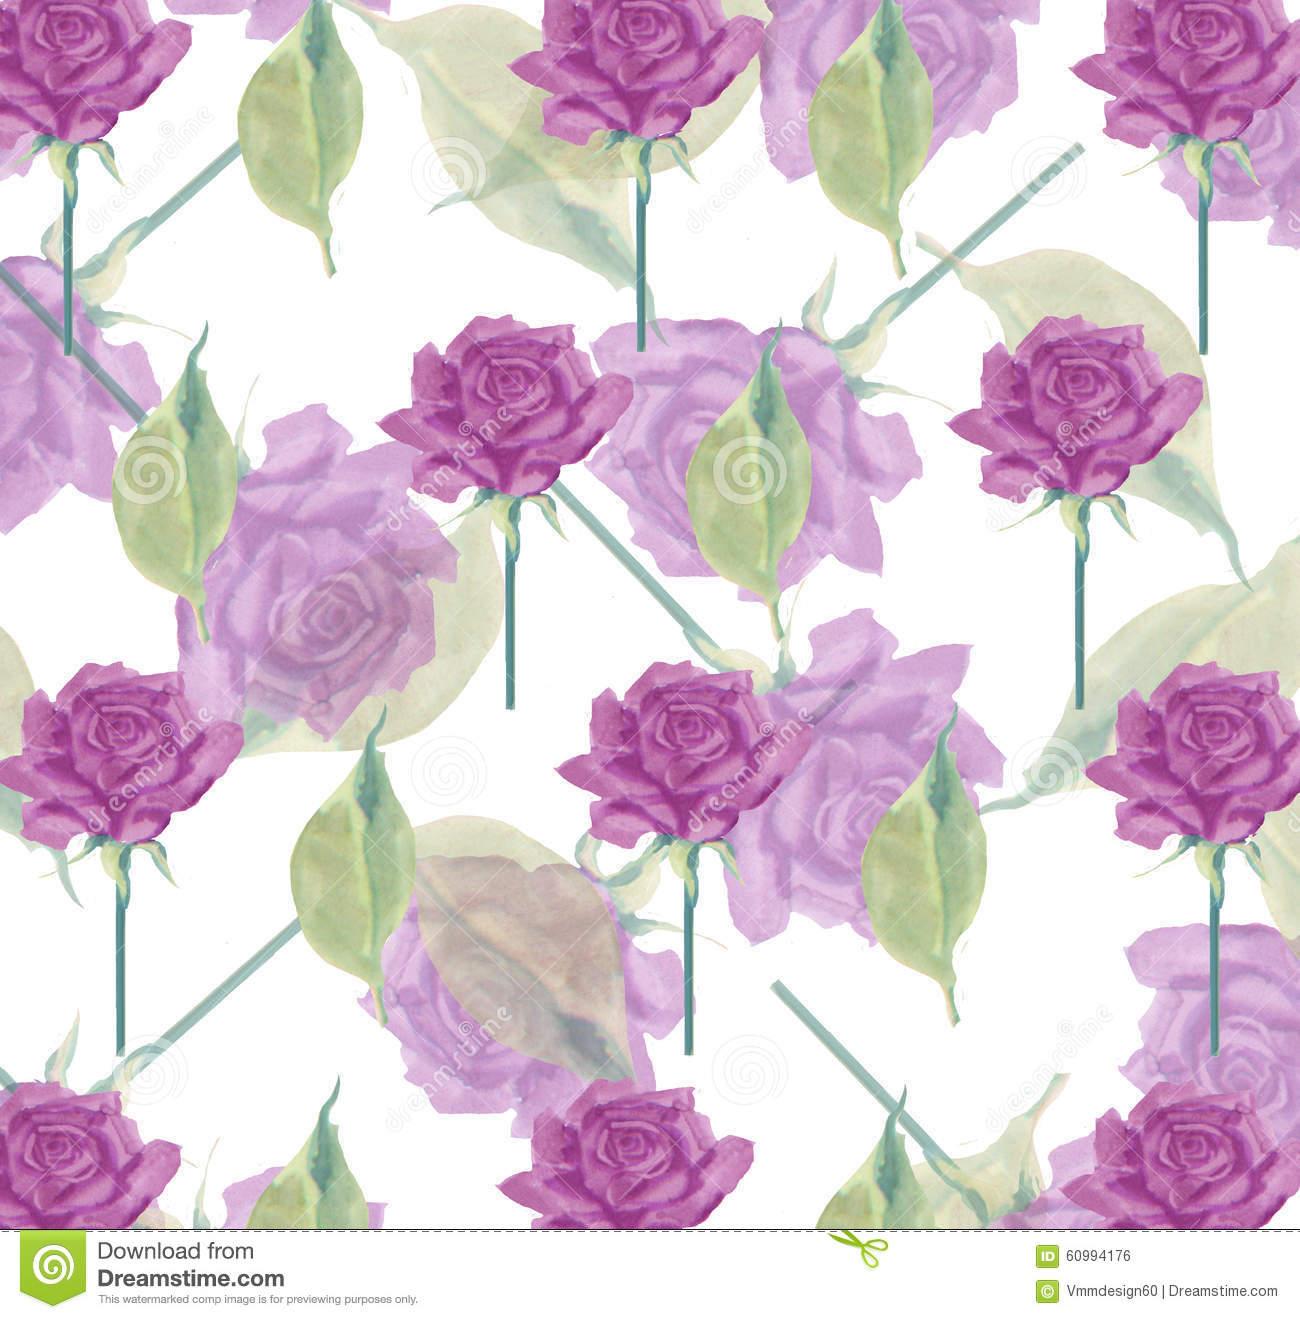 Flower Seamless Rose Wallpaper Background Stationery Wrapping Paper